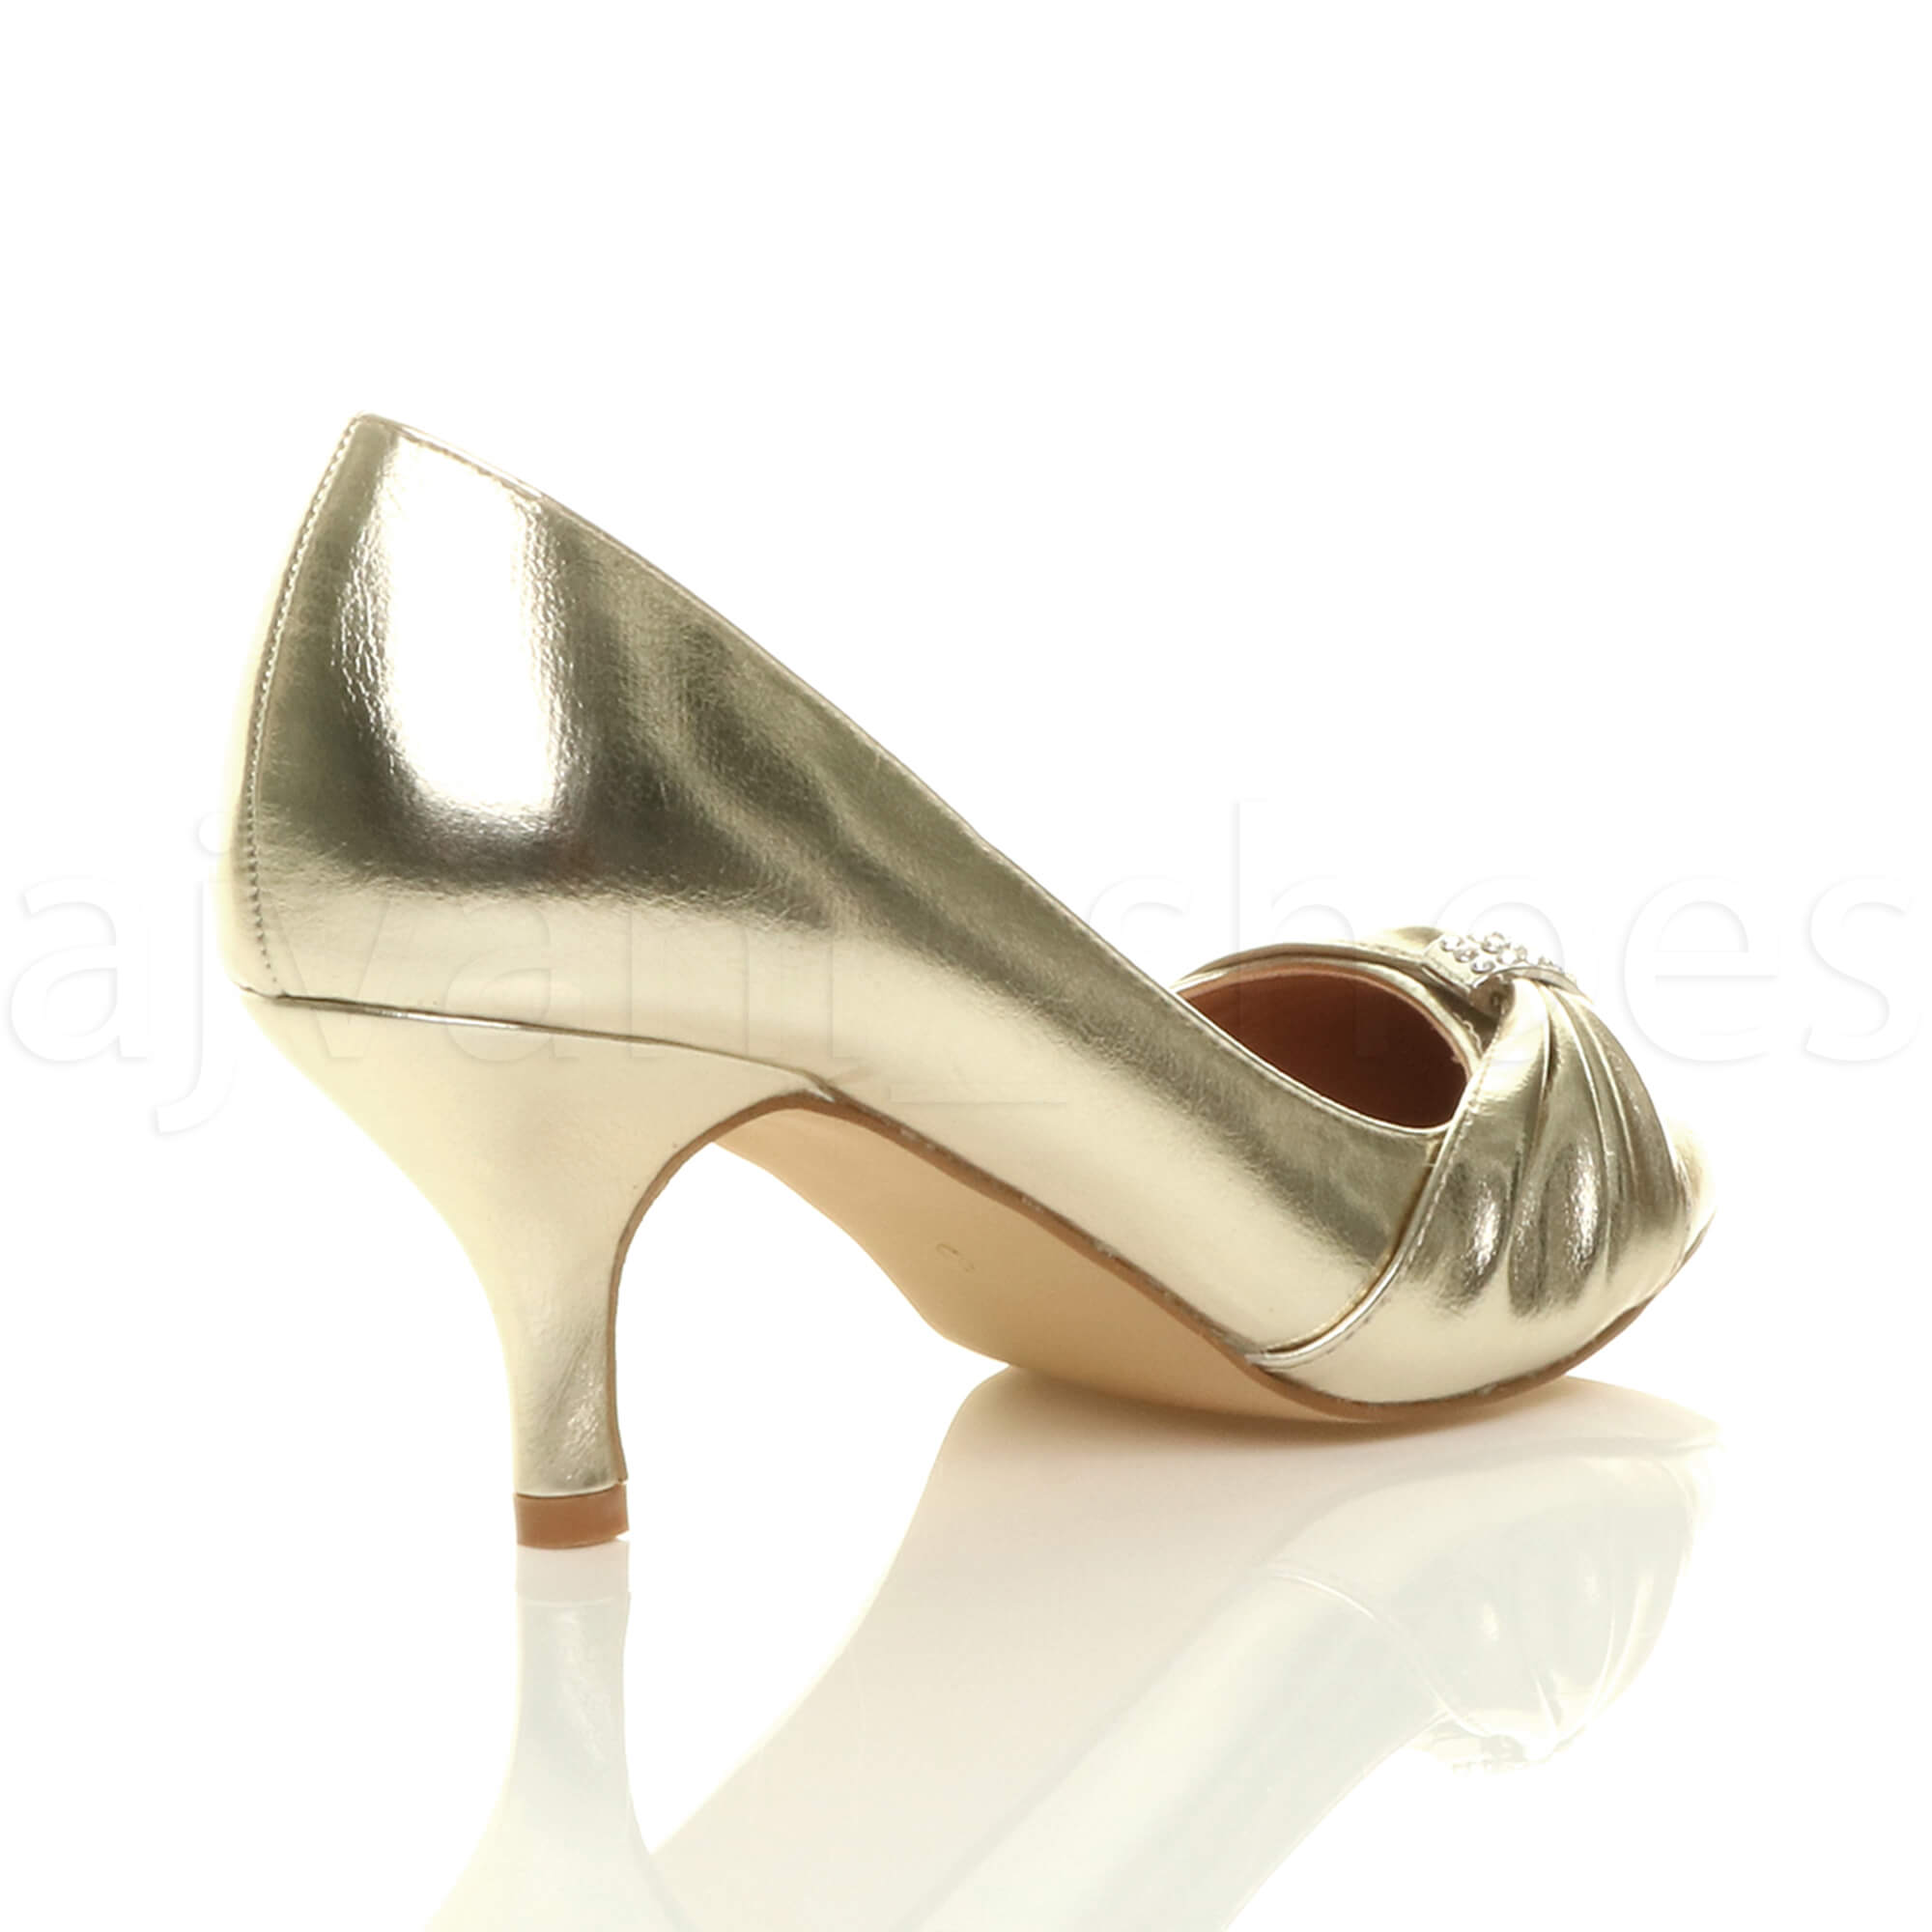 WOMENS-LADIES-MID-HEEL-RUCHED-DIAMANTE-WEDDING-PROM-EVENING-COURT-SHOES-SIZE thumbnail 29